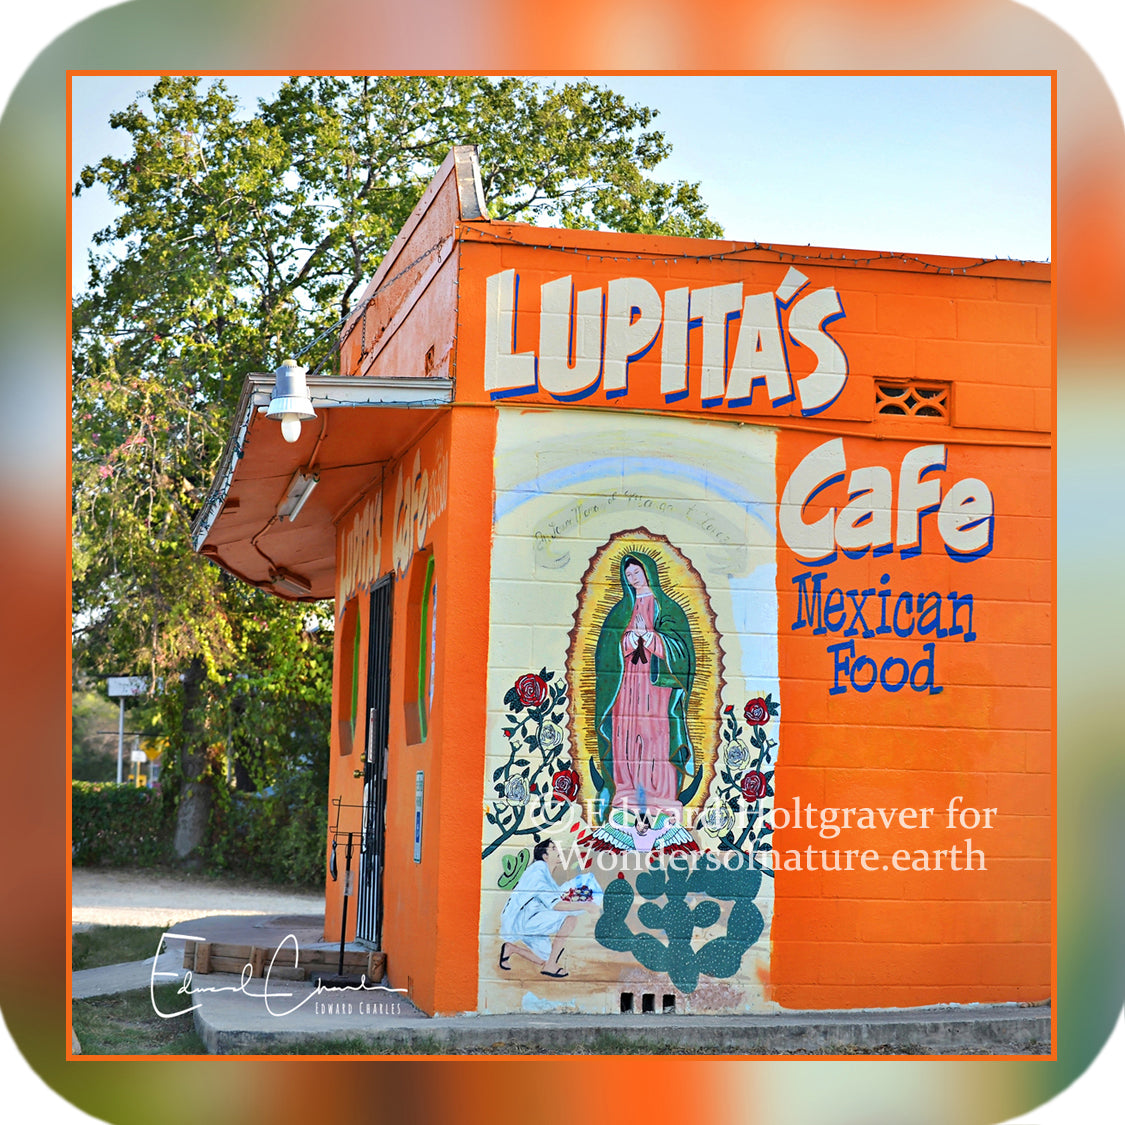 Structures - Lupita's Cafe in San Antonio